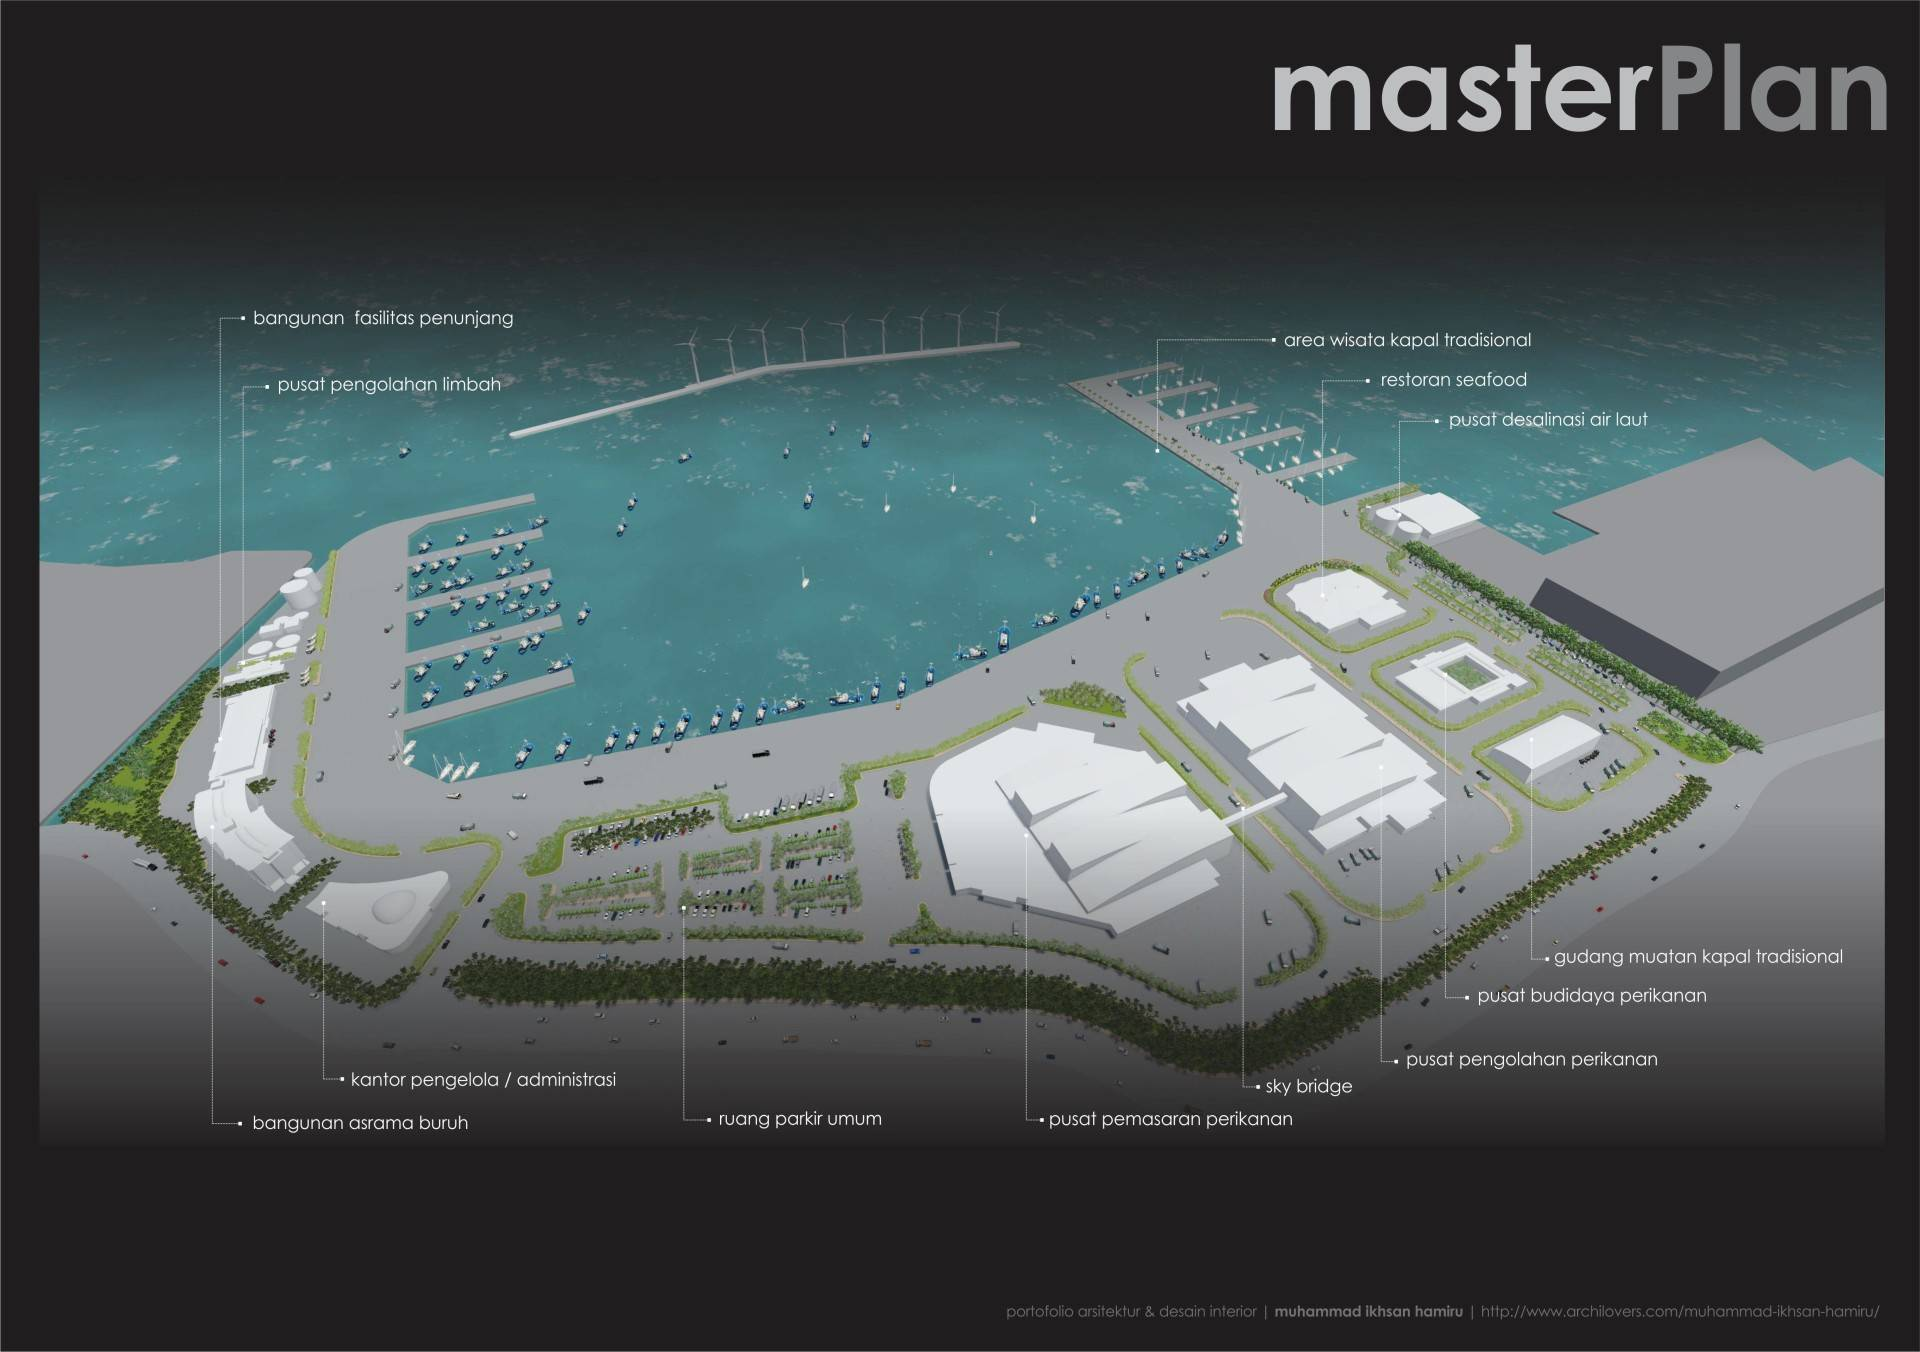 Miv Architects (Ar. Muhammad Ikhsan Hamiru, Iai & Partners) Concept Of Integrated Fishing Industry In Paotere, Makassar (Final Project Architecture Studio) Makassar, Sulawesi Selatan, Indonesia Makassar, Sulawesi Selatan, Indonesia Photo-5013 Industrial  5013